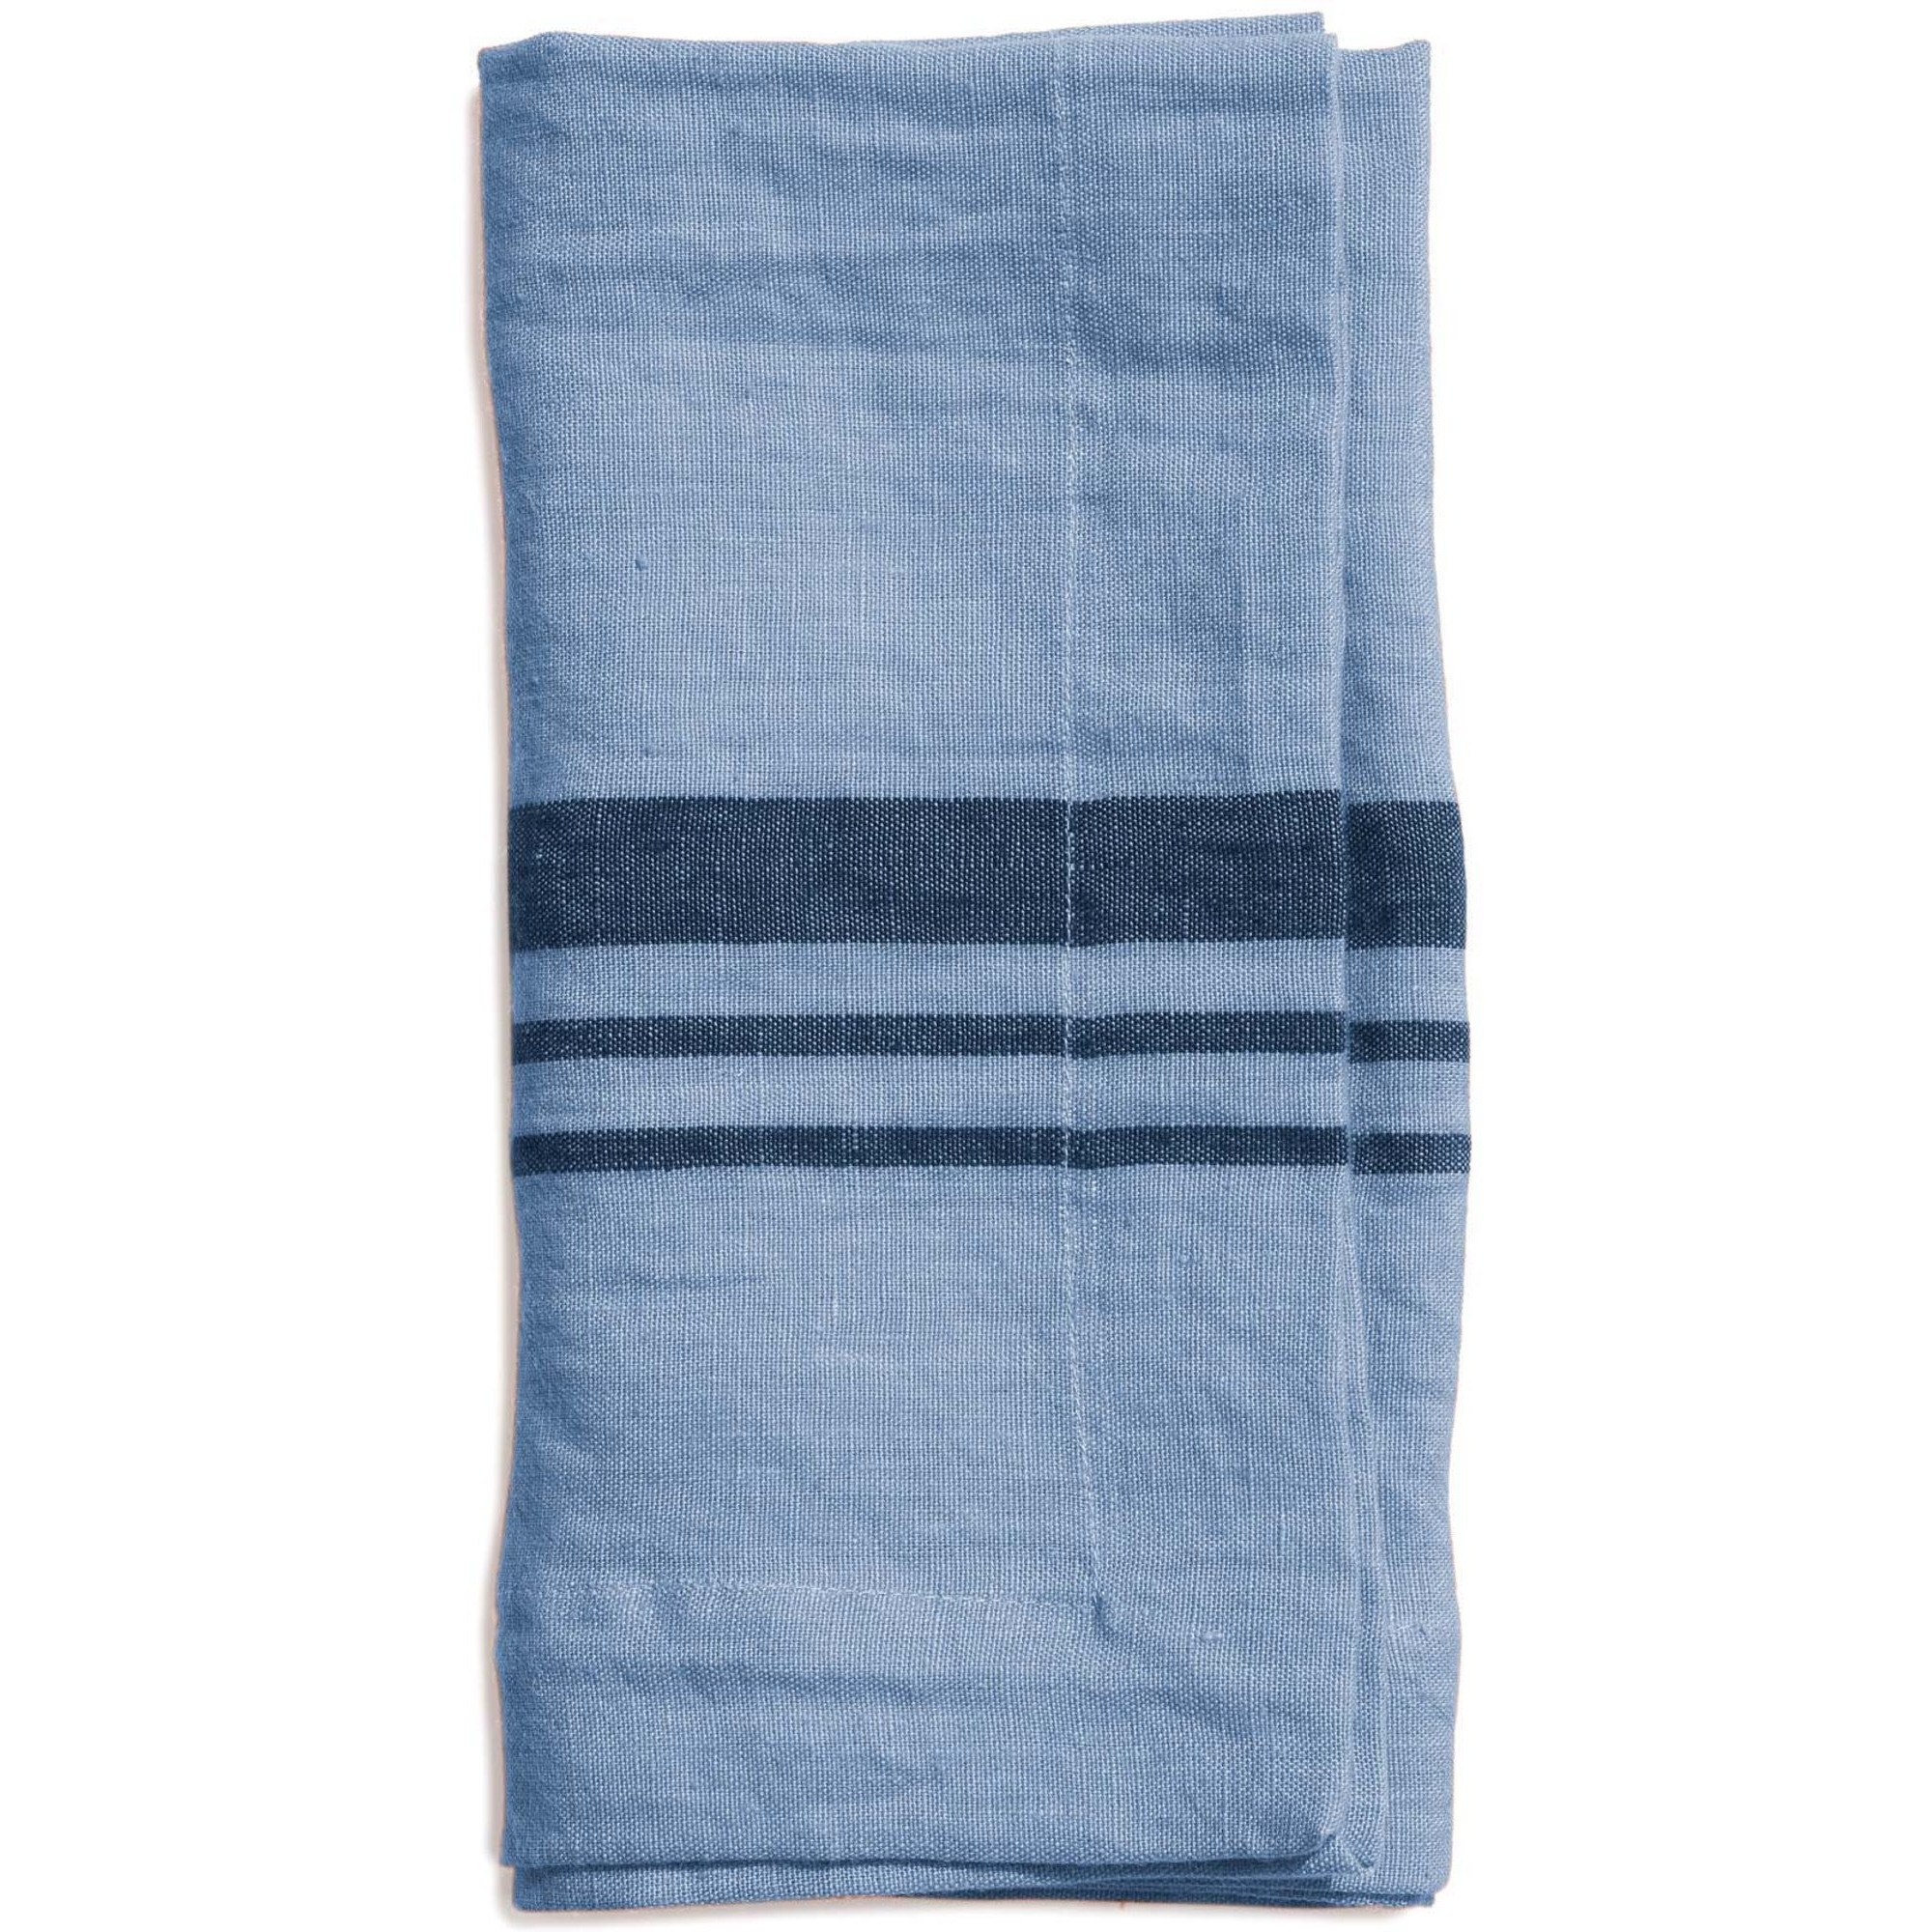 Top Drawer Servett LITTLEWOOD i linné stripe Misty Blue 4-pack